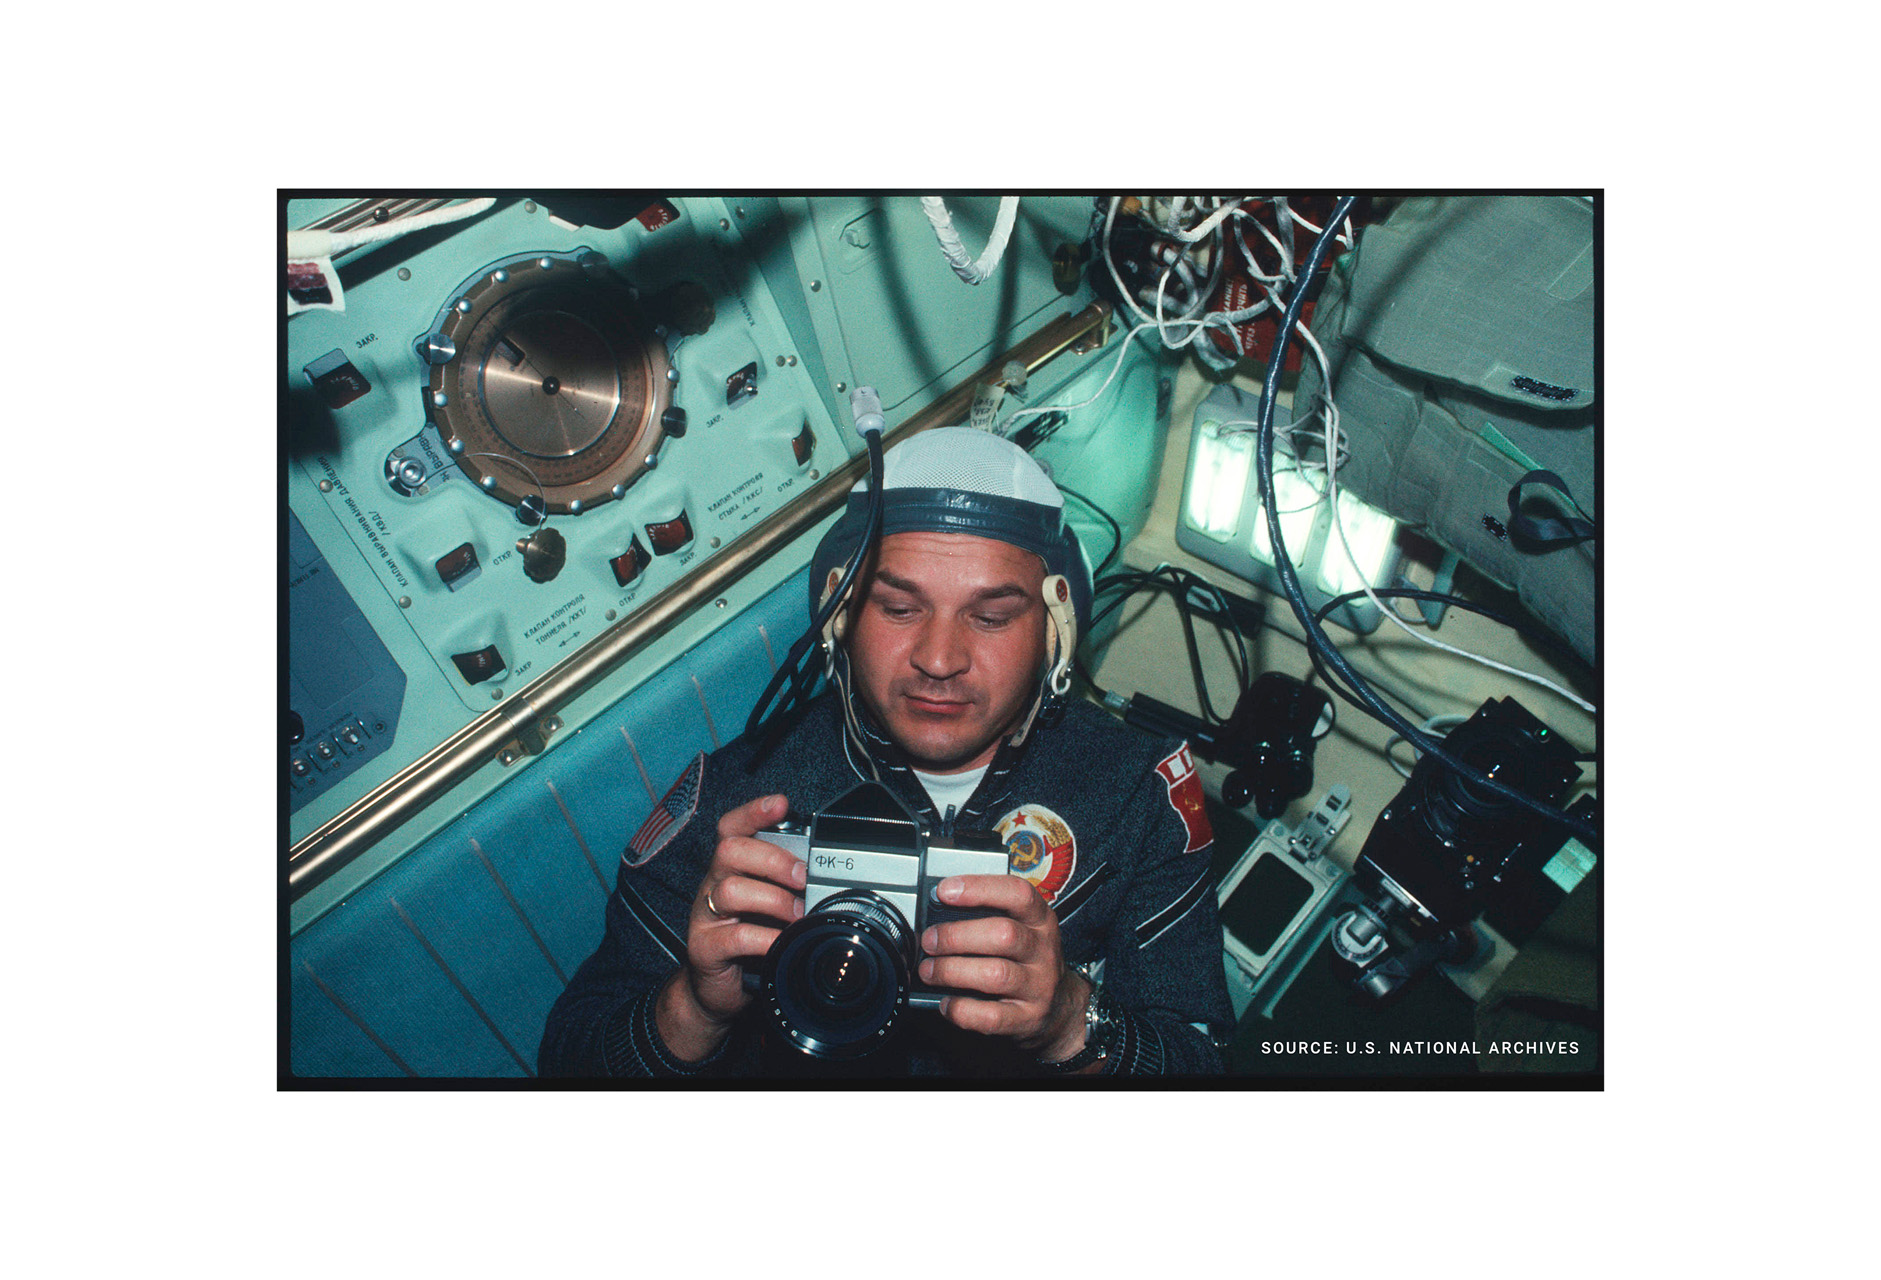 Kubarov with FK-6 camera (Pic: Alexei Leonov/US National Archives)